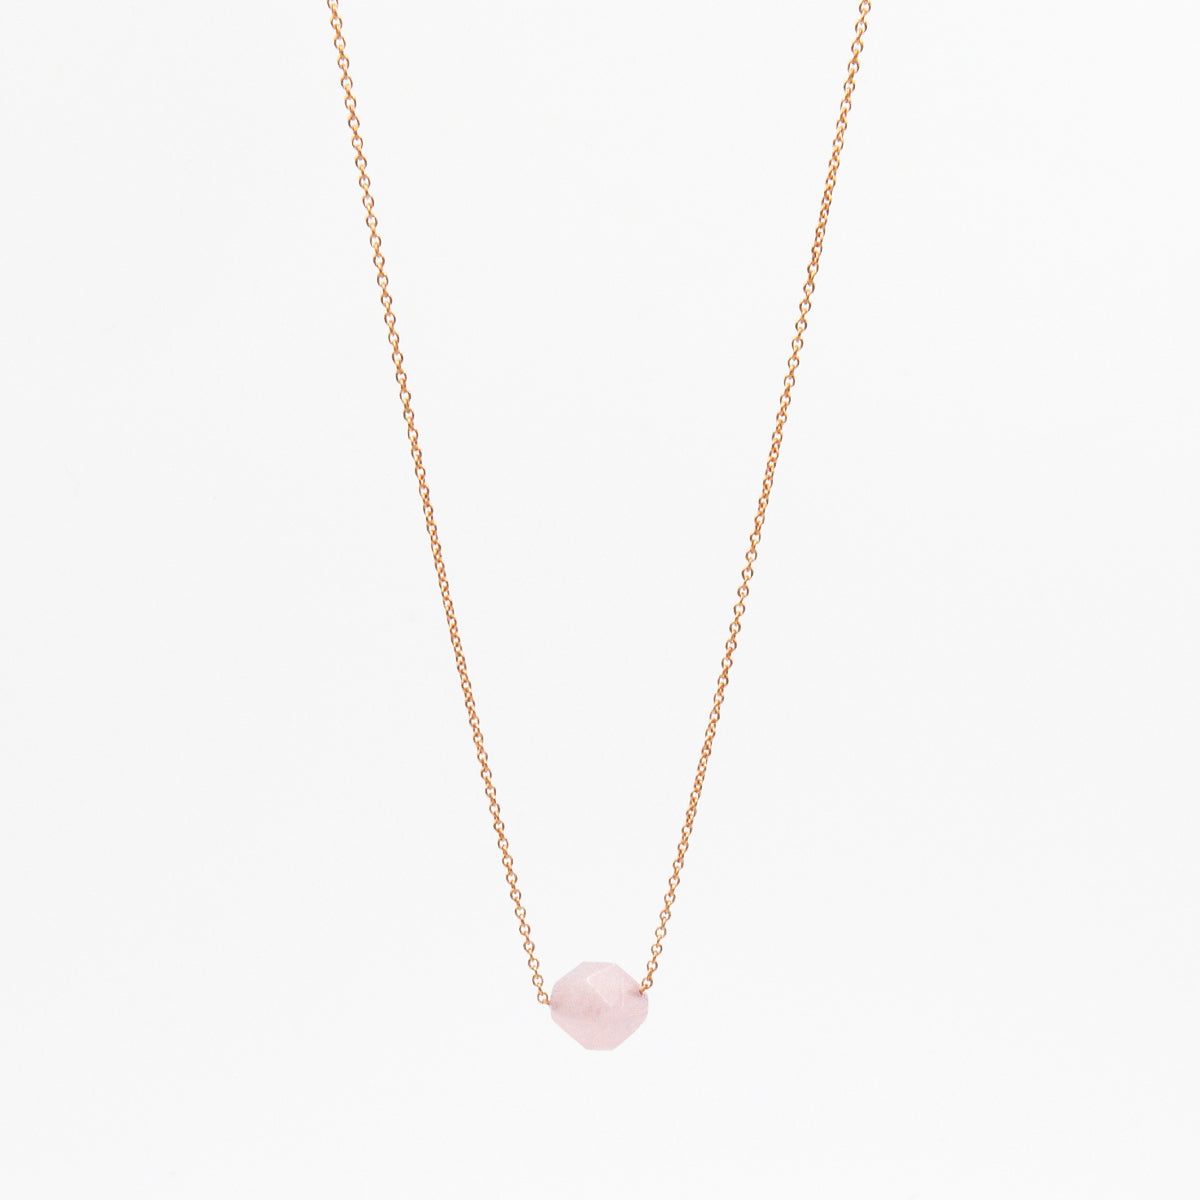 Kette Gemstone - Blush